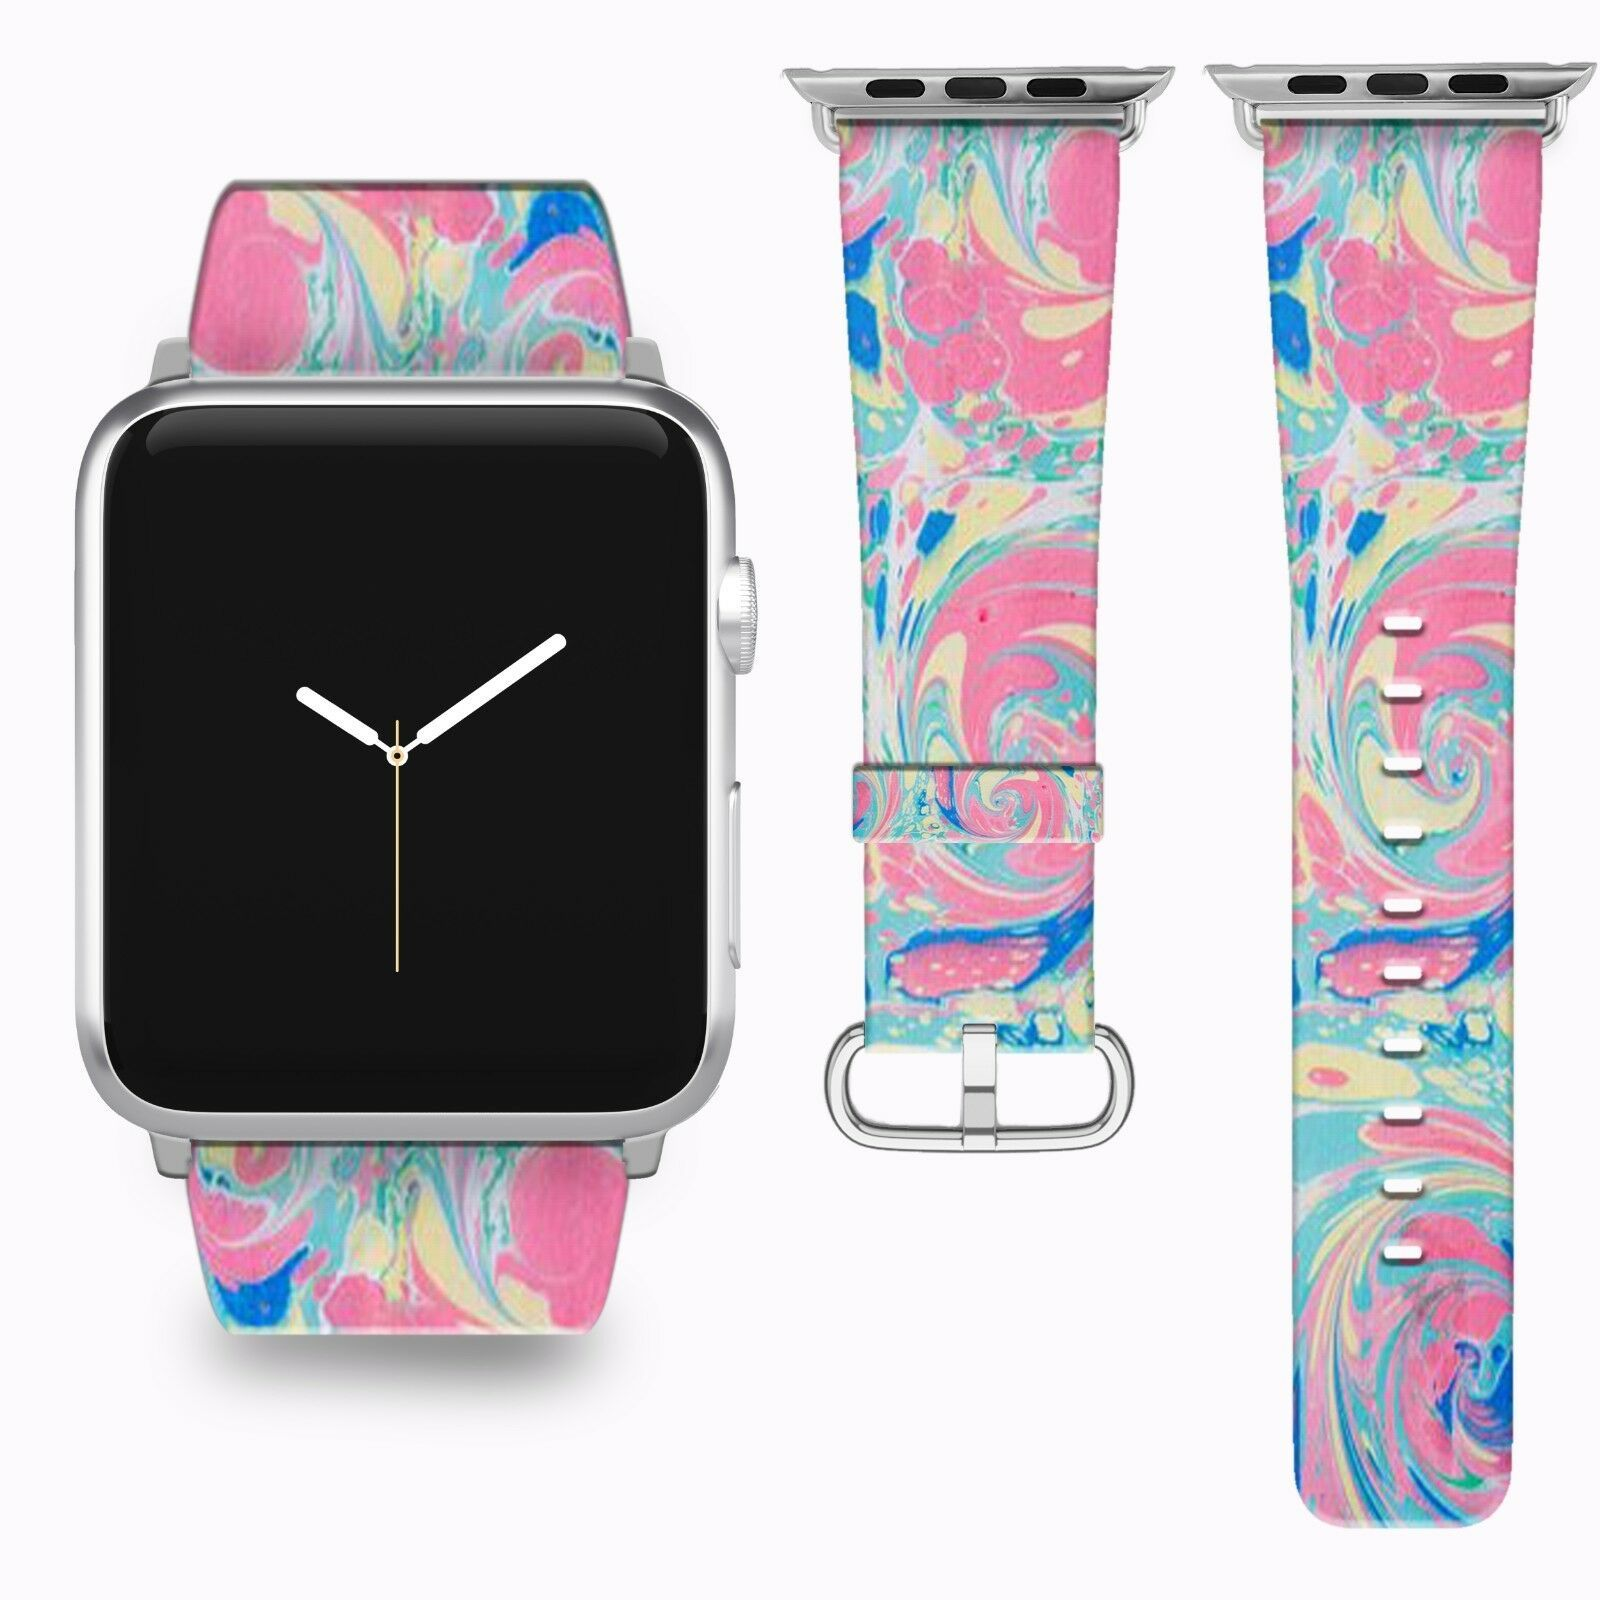 Primary image for Vintage Abstraction Apple Watch Band 38 40 42 44 mm Series 1 2 3 4 Wrist Strap 1